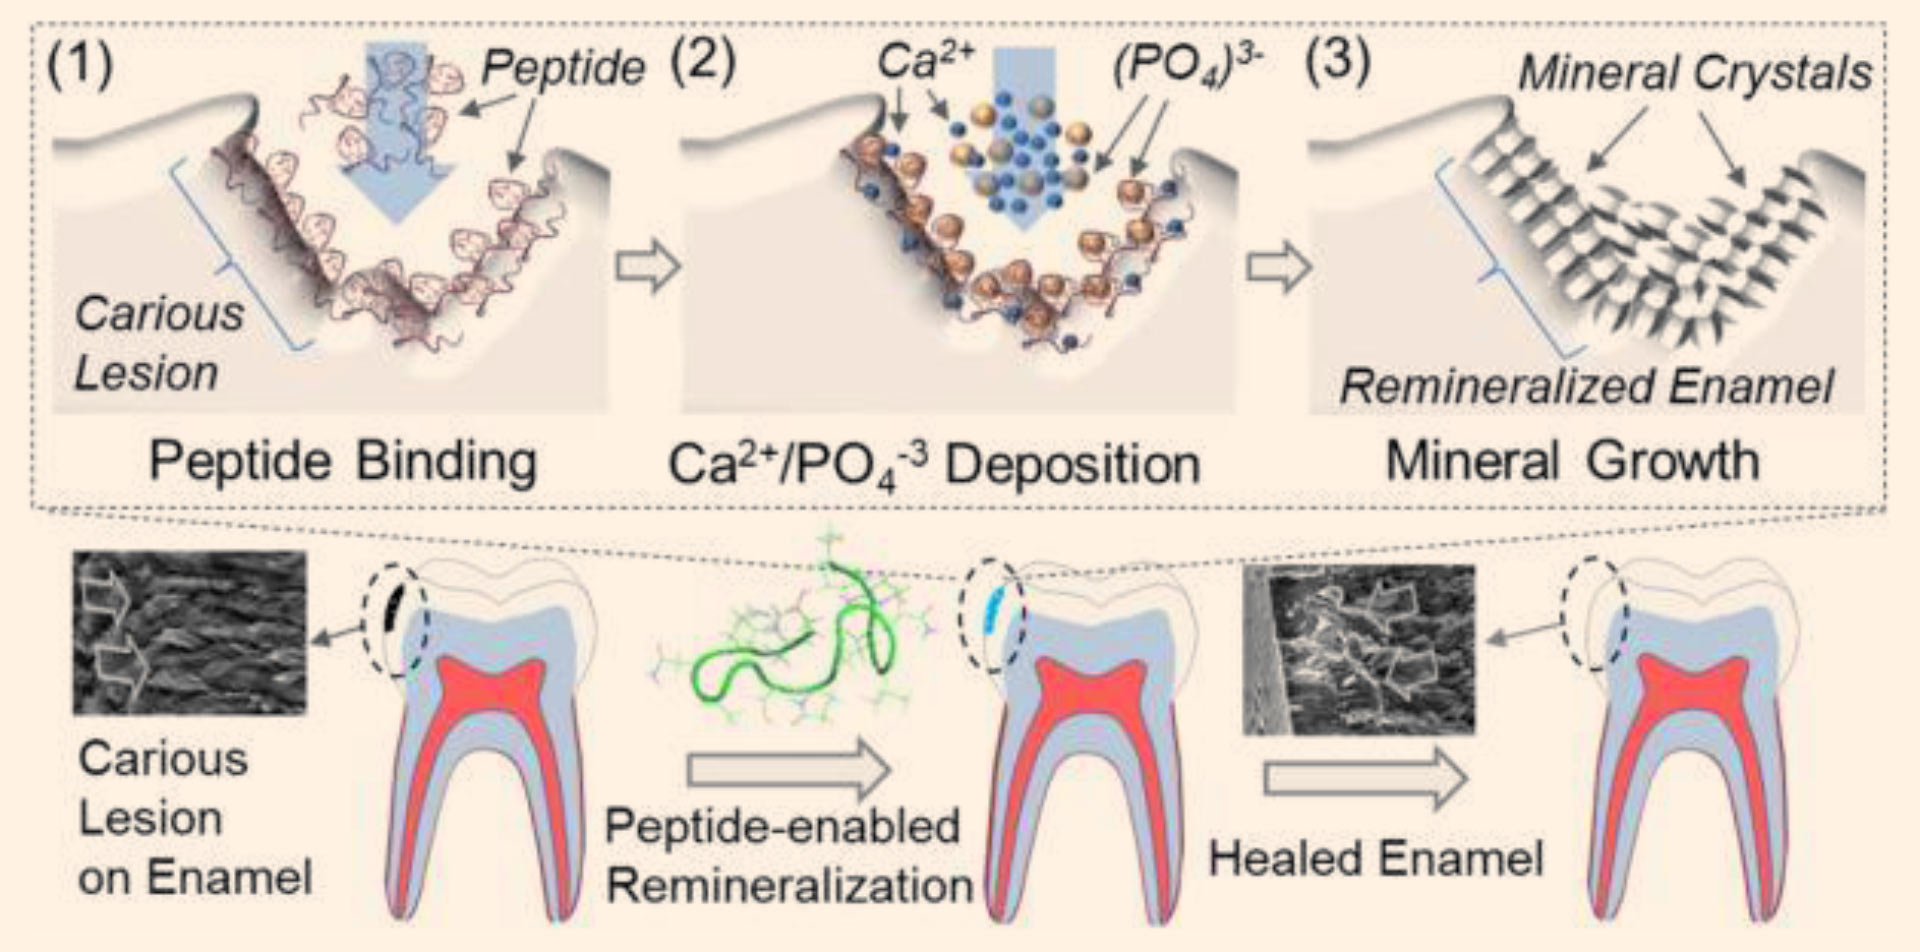 New biogenic dental product rebuilds tooth enamel treats cavities schematic illustration of peptide guided biomimetic tooth repair technology image credit dogan et ccuart Gallery